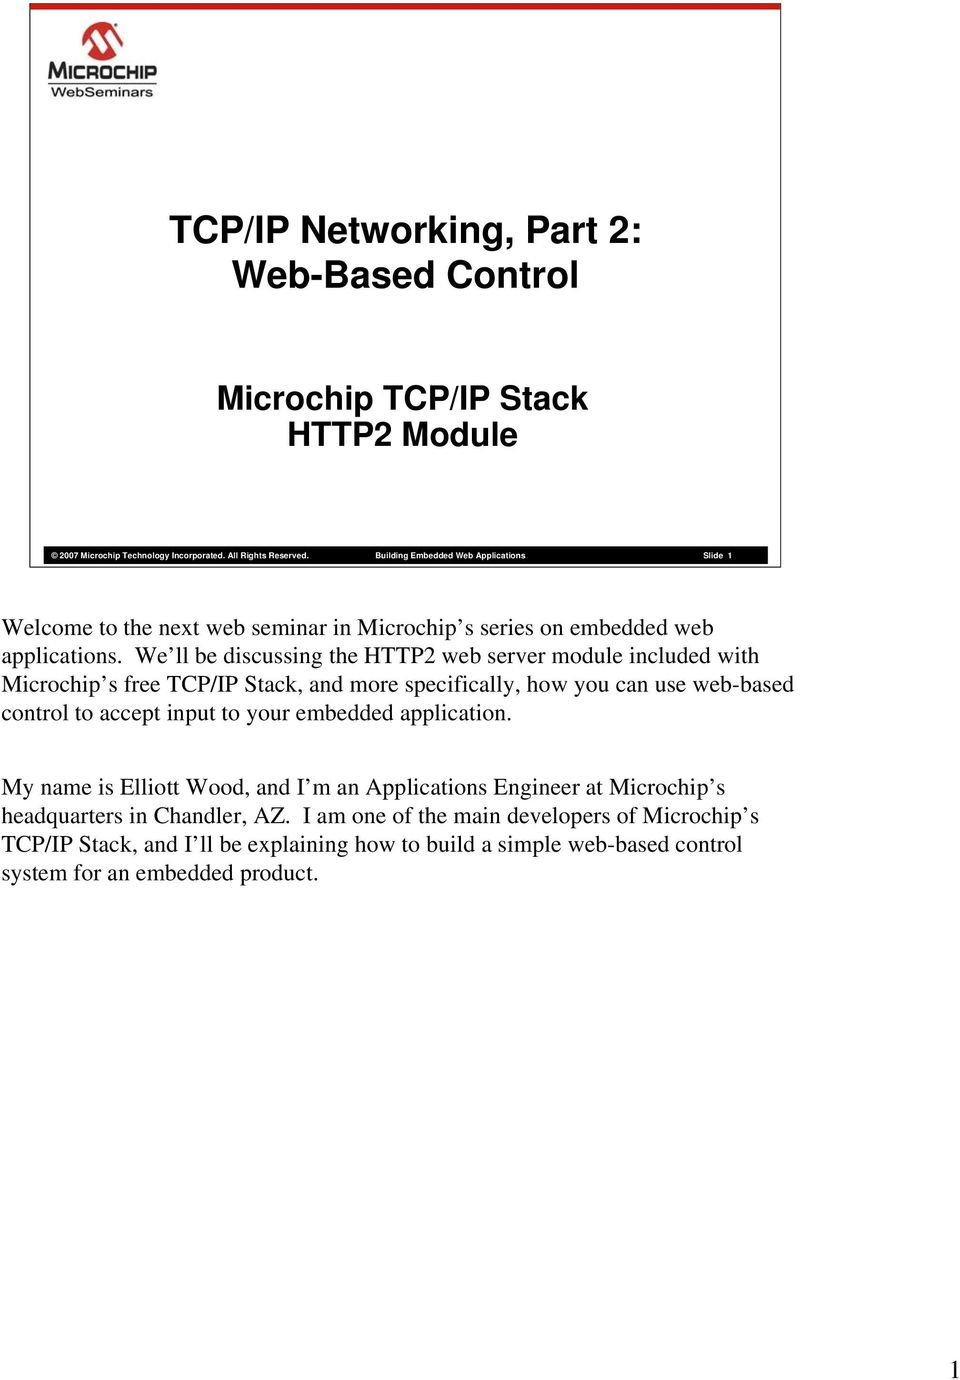 We ll be discussing the HTTP2 web server module included with Microchip s free TCP/IP Stack, and more specifically, how you can use web-based control to accept input to your